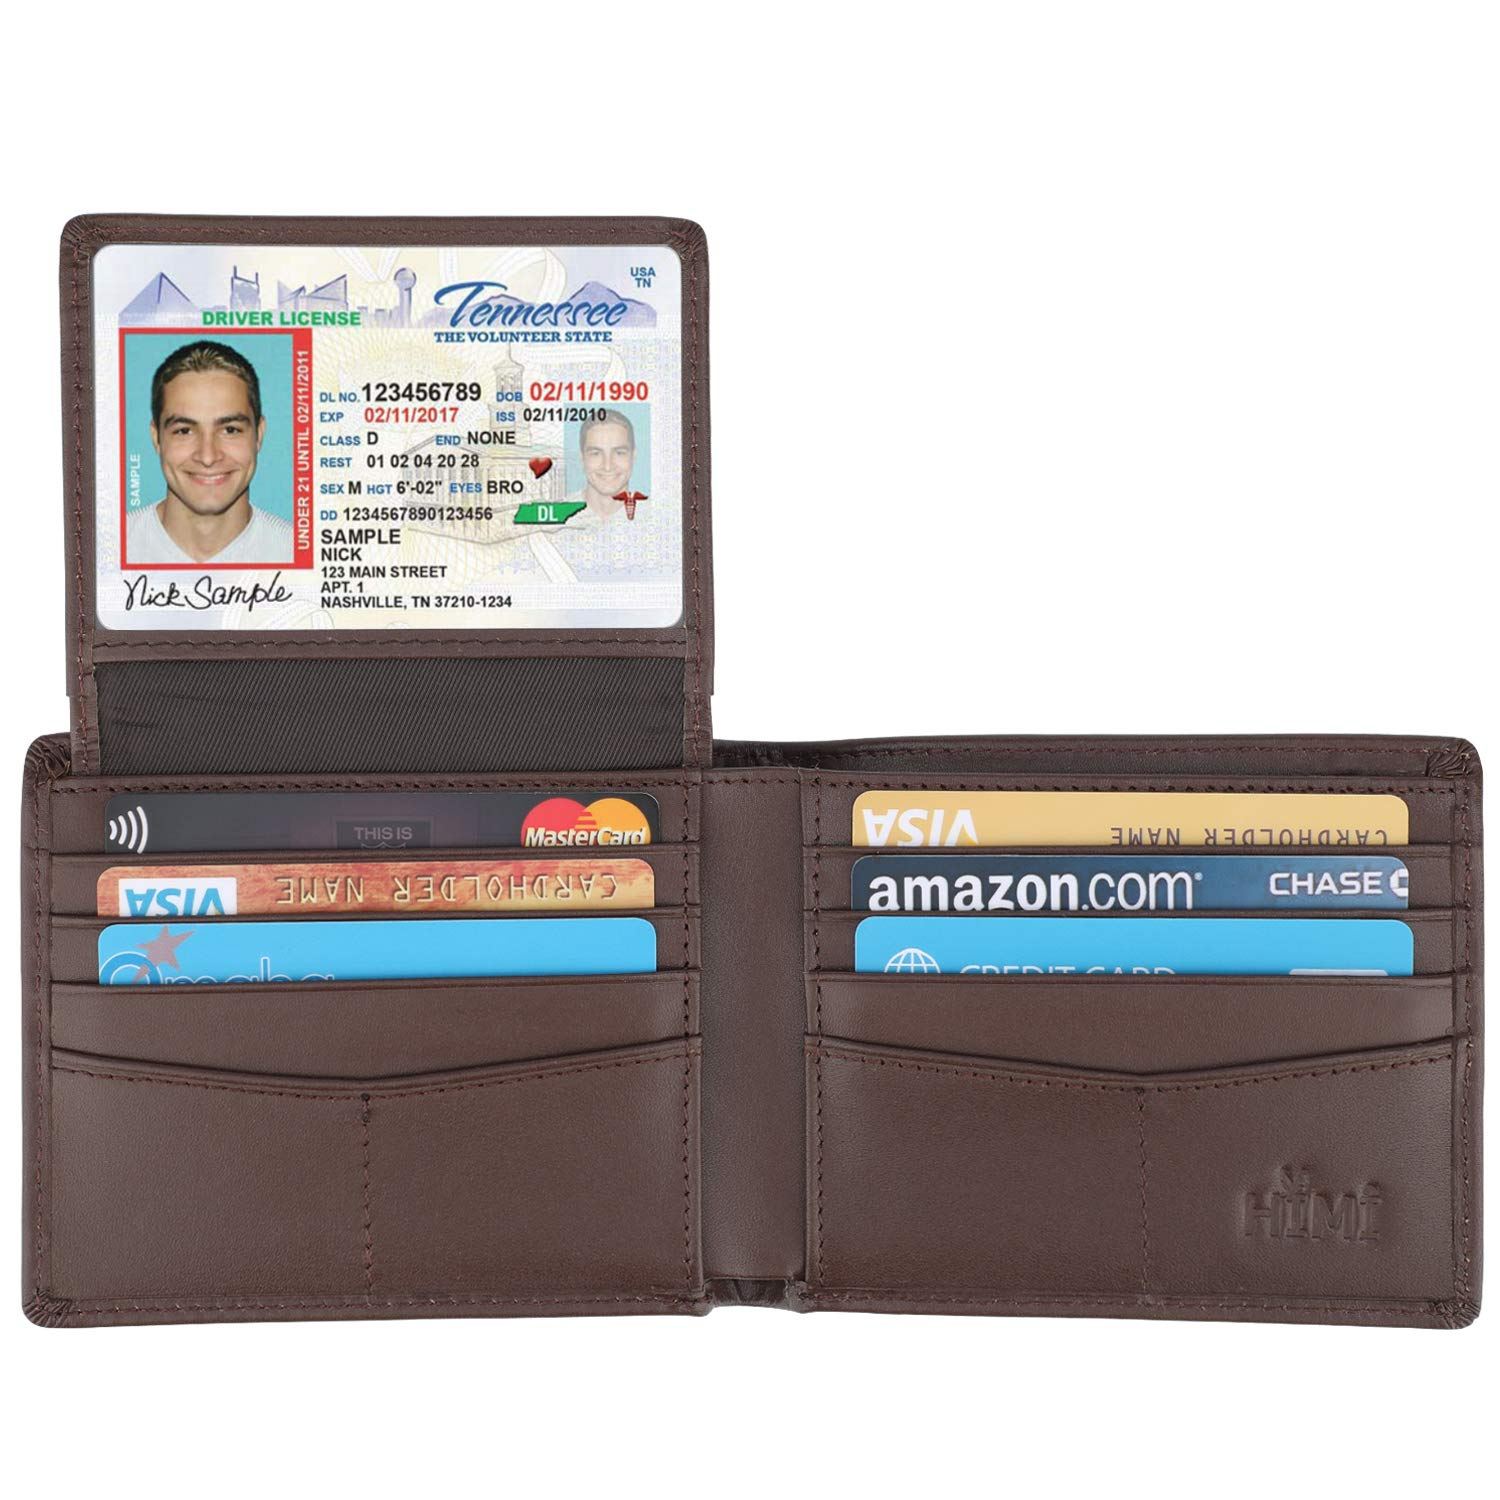 Wallet for Men-Genuine Leather RFID Blocking Bifold Stylish Wallet With 2 ID Window (Coffee-Smooth Leather)